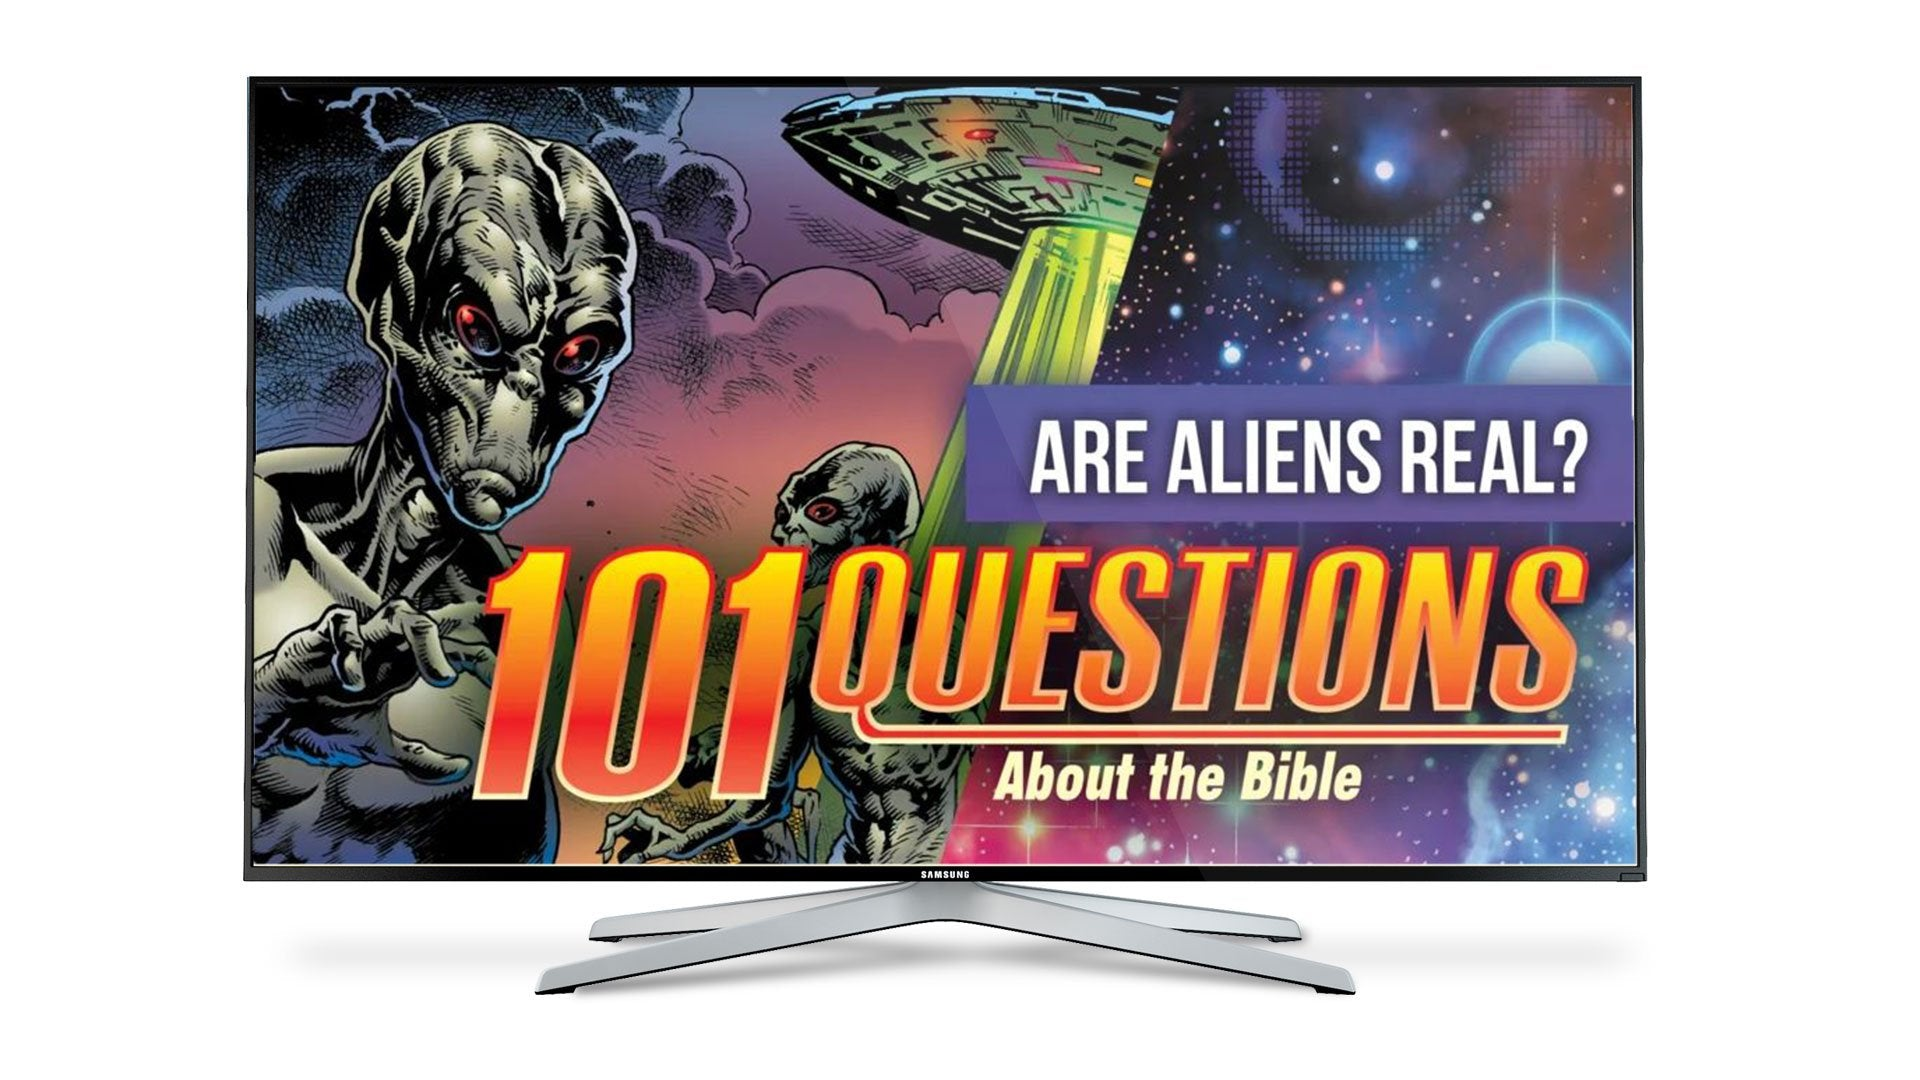 101 Questions: #7 What Does the Bible Say About Aliens? - Kingstone Comics